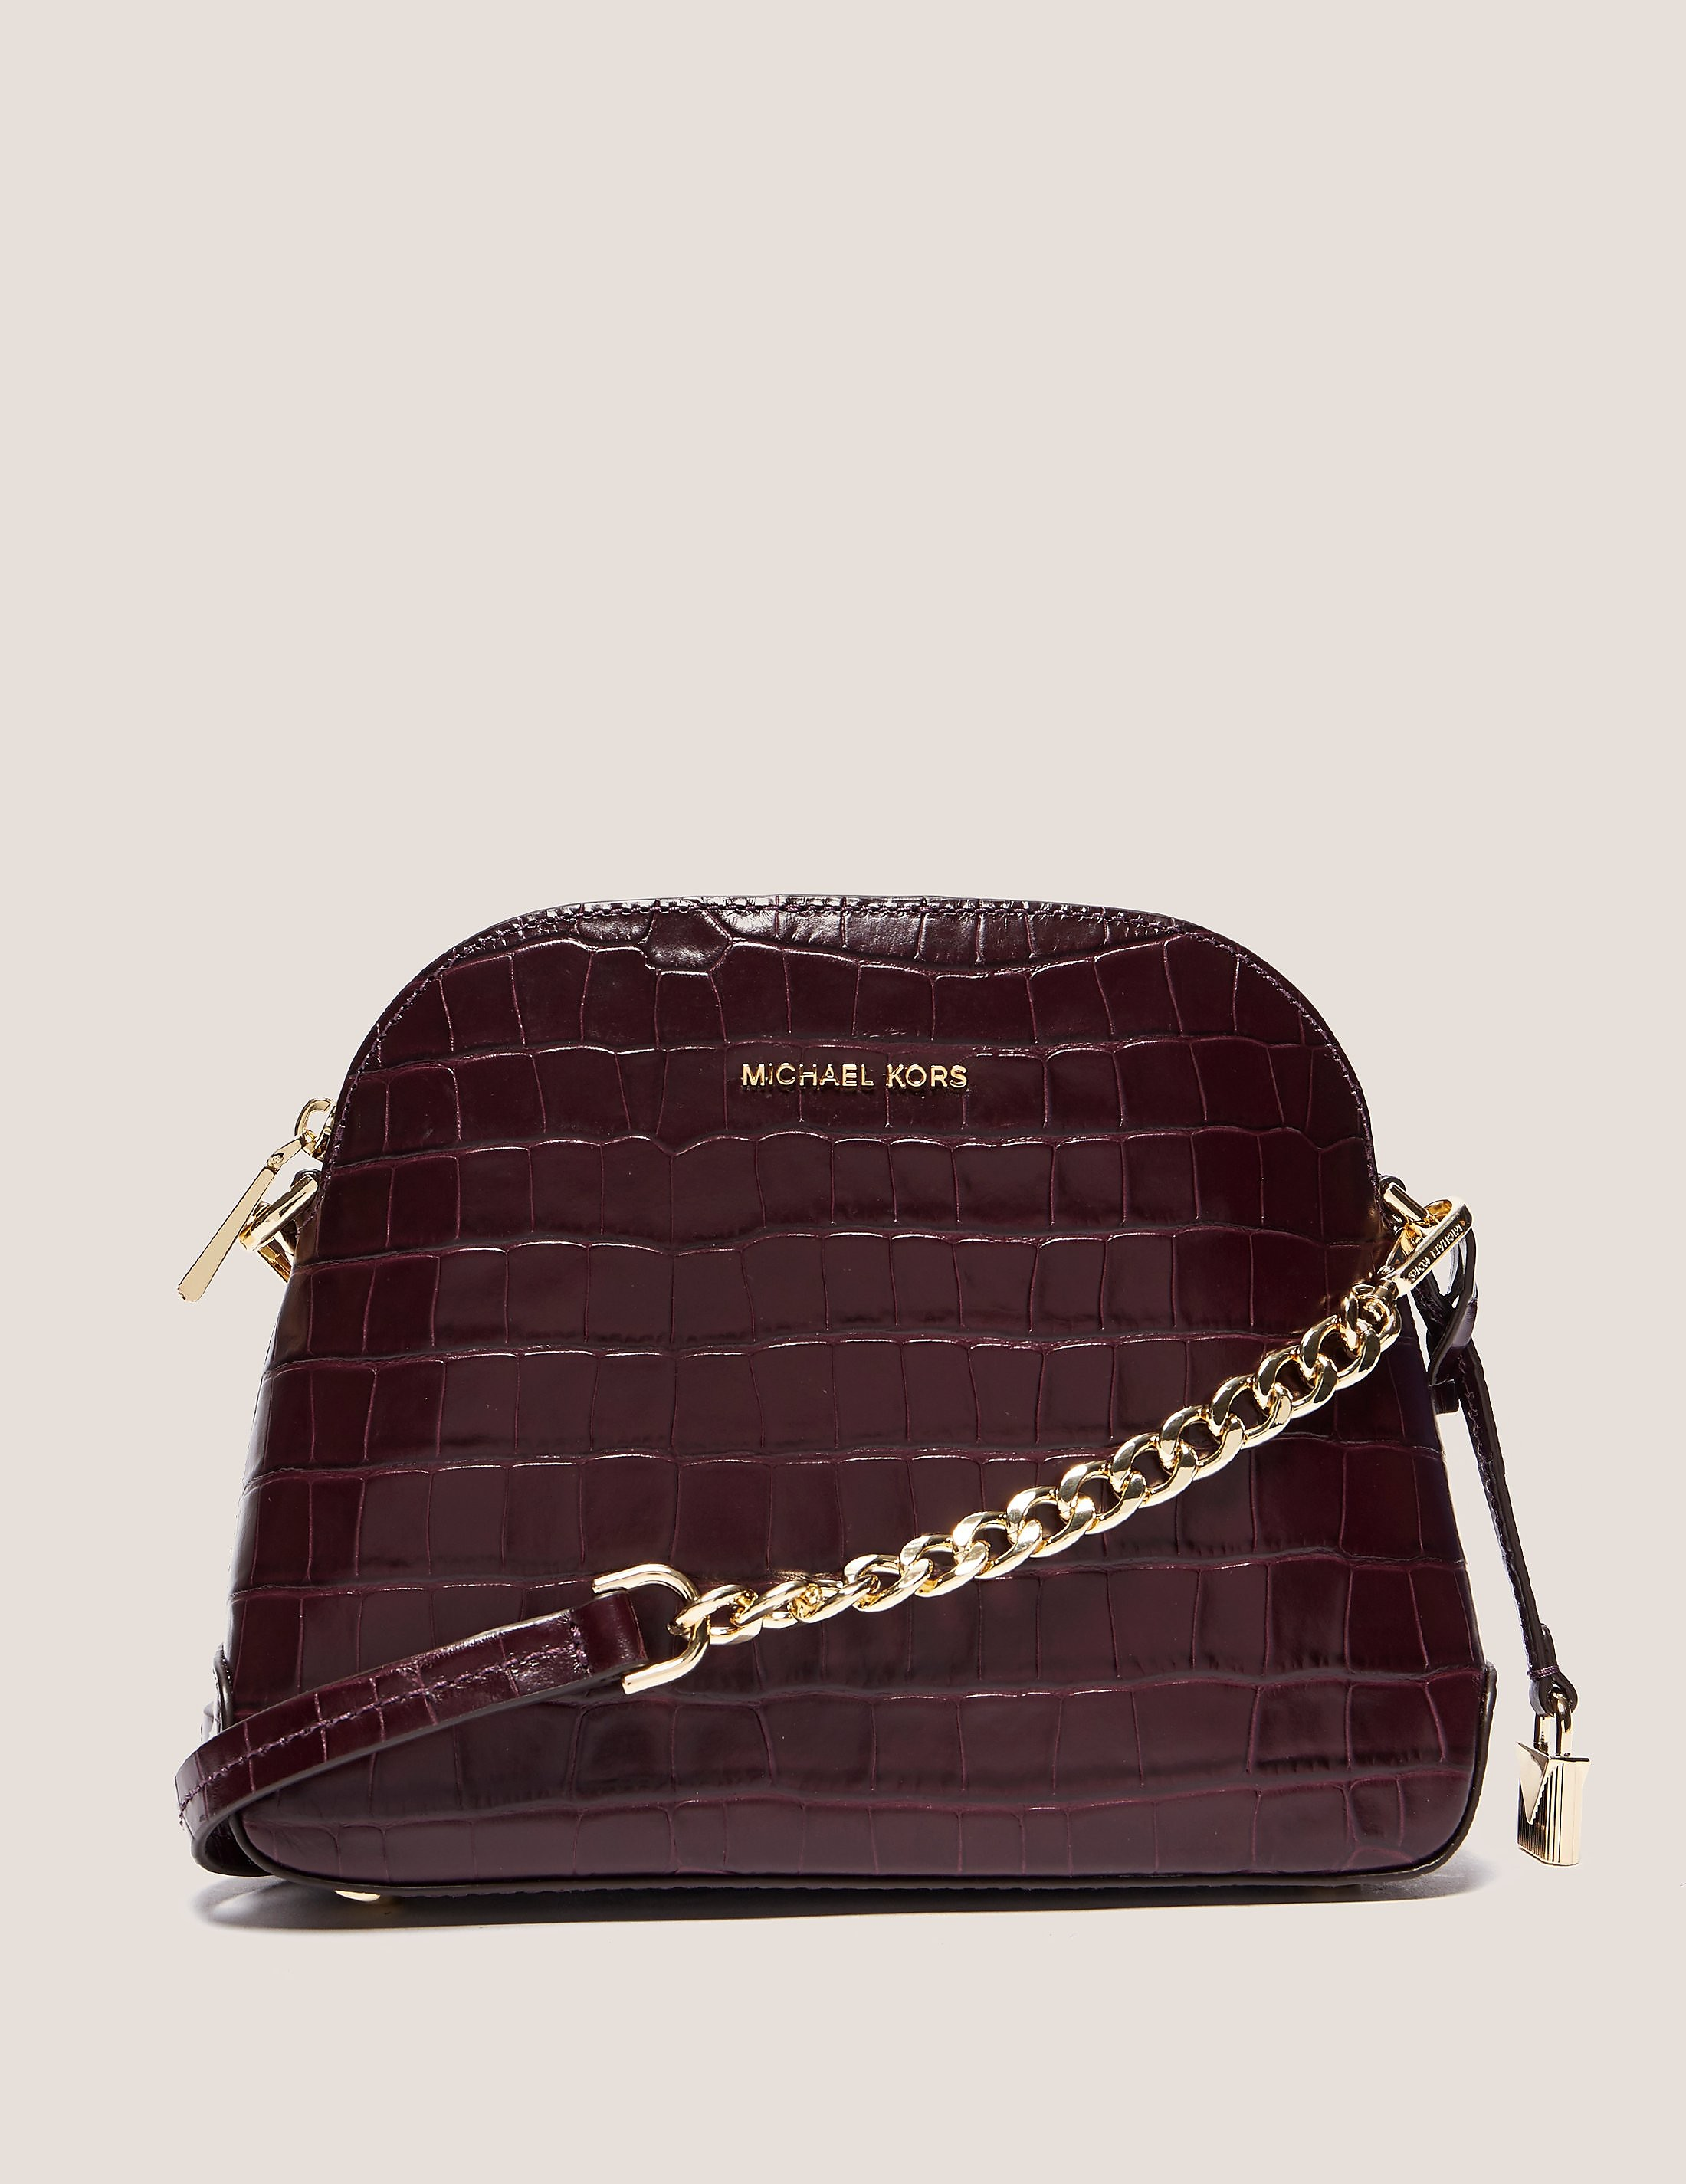 Michael Kors Mercer Dome Bag